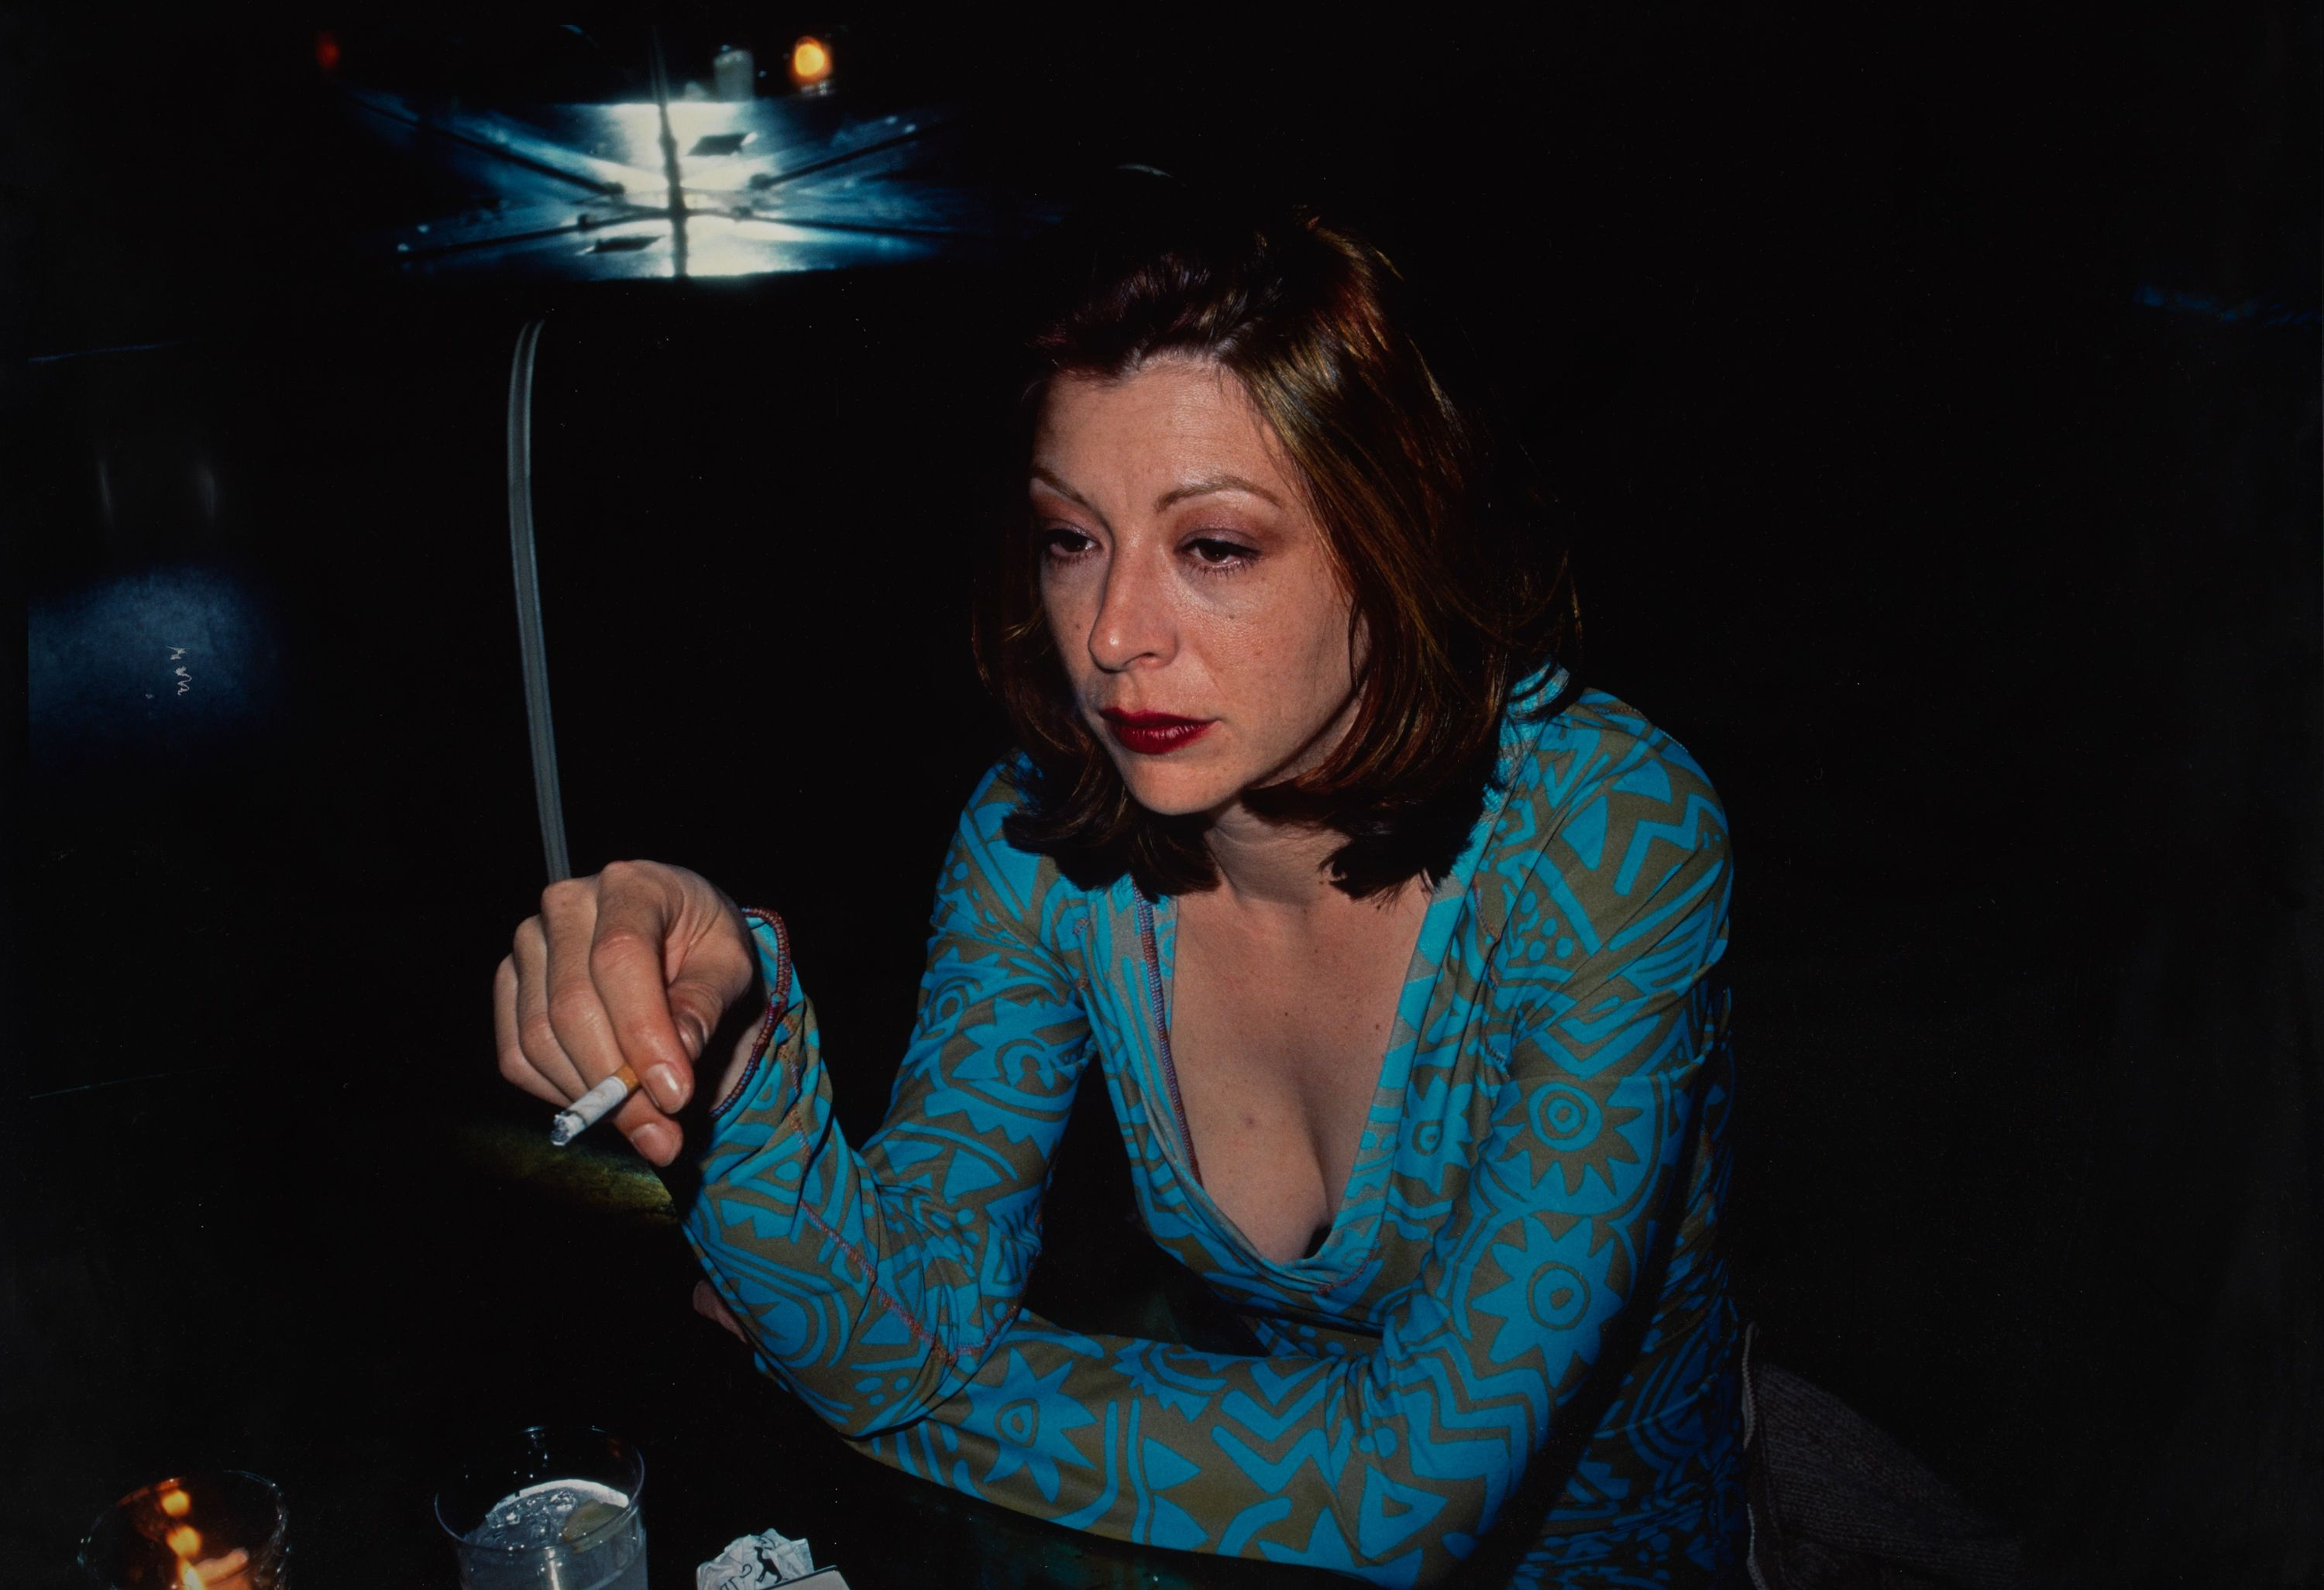 A photograph of Kathleen White sitting at a bar, gazing in the distance looking sad